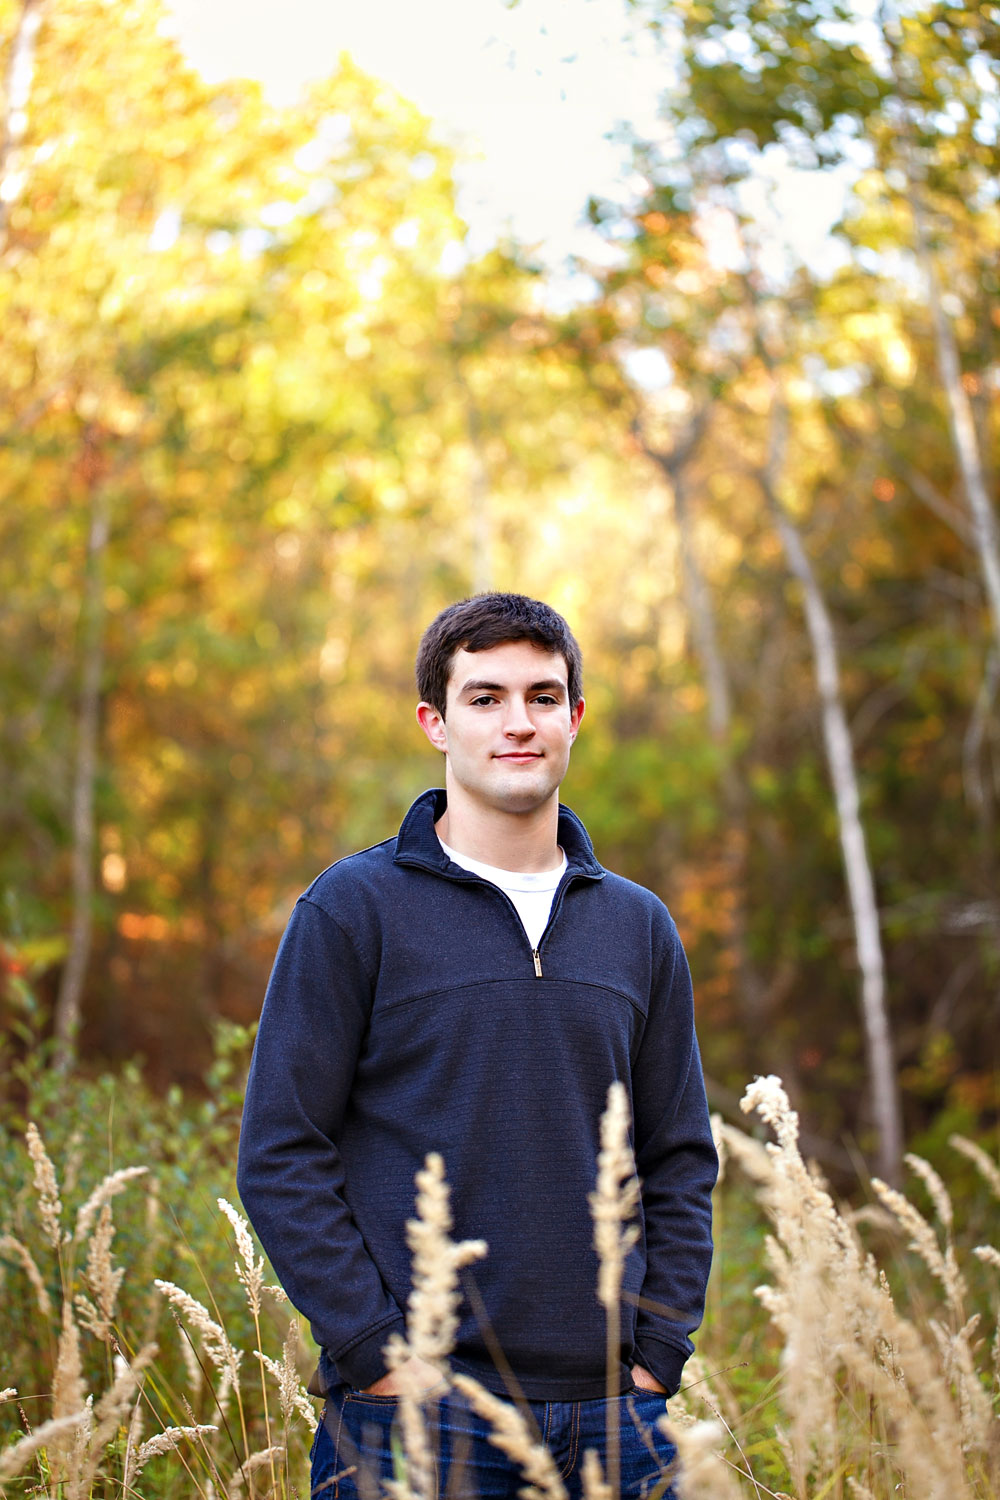 austin-highschool-senior-boy-braintree-massachusetts-pond-meadow-autumn-nicole-chaput-photography-001.jpg